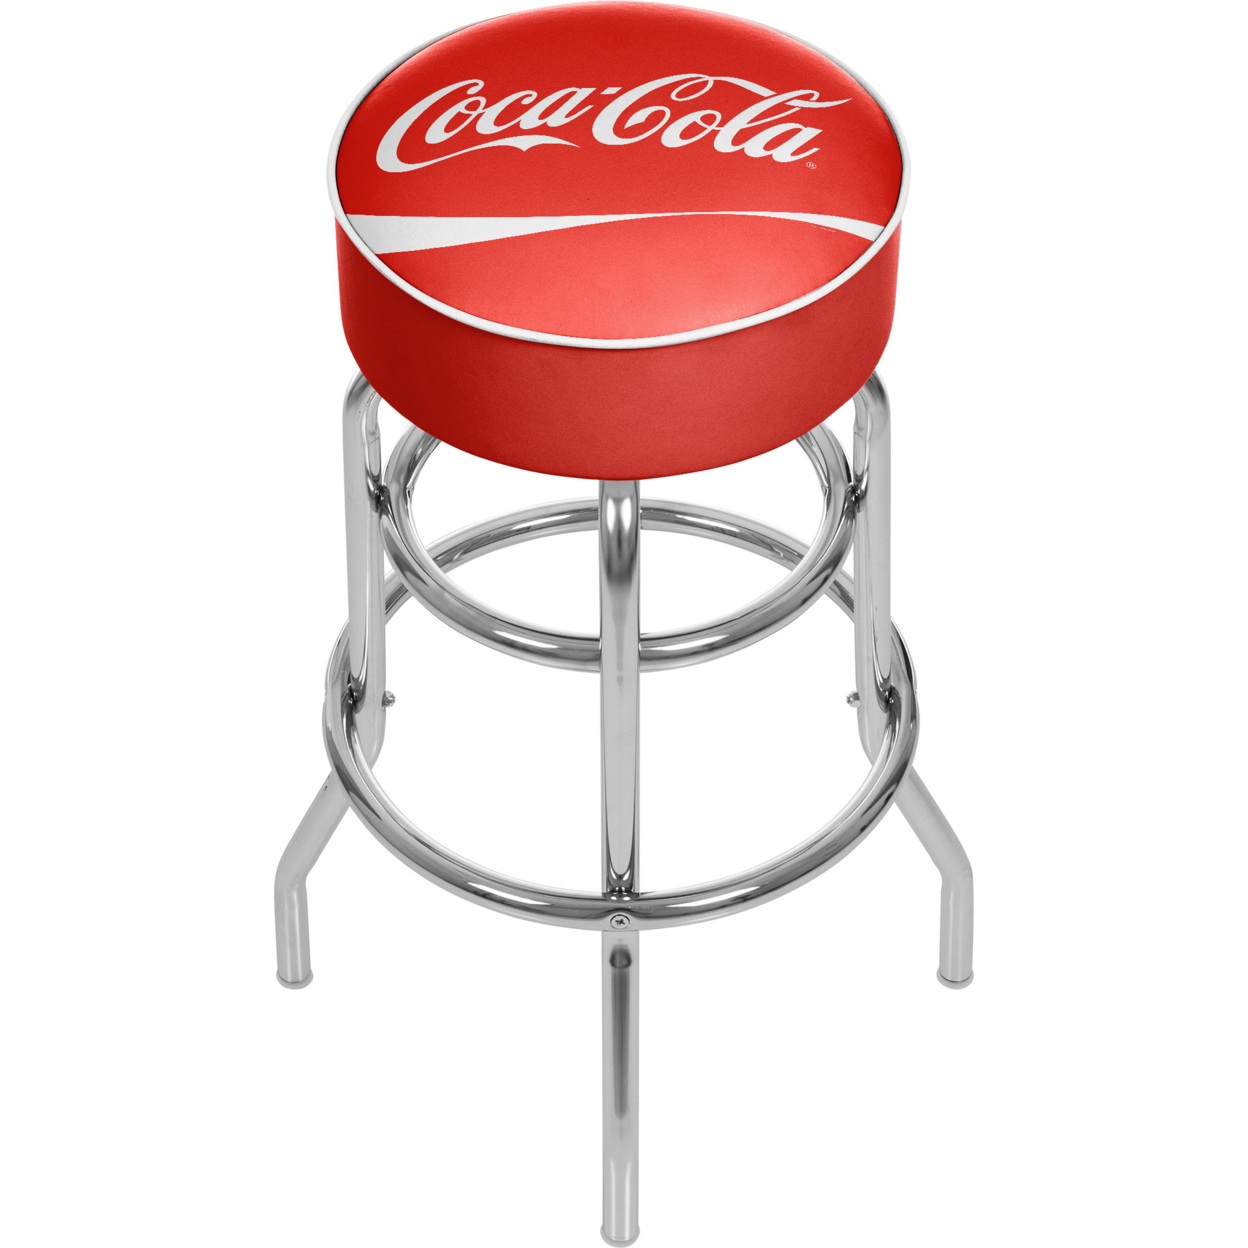 Coca Cola Padded Swivel Bar Stool 30 Inches High ...